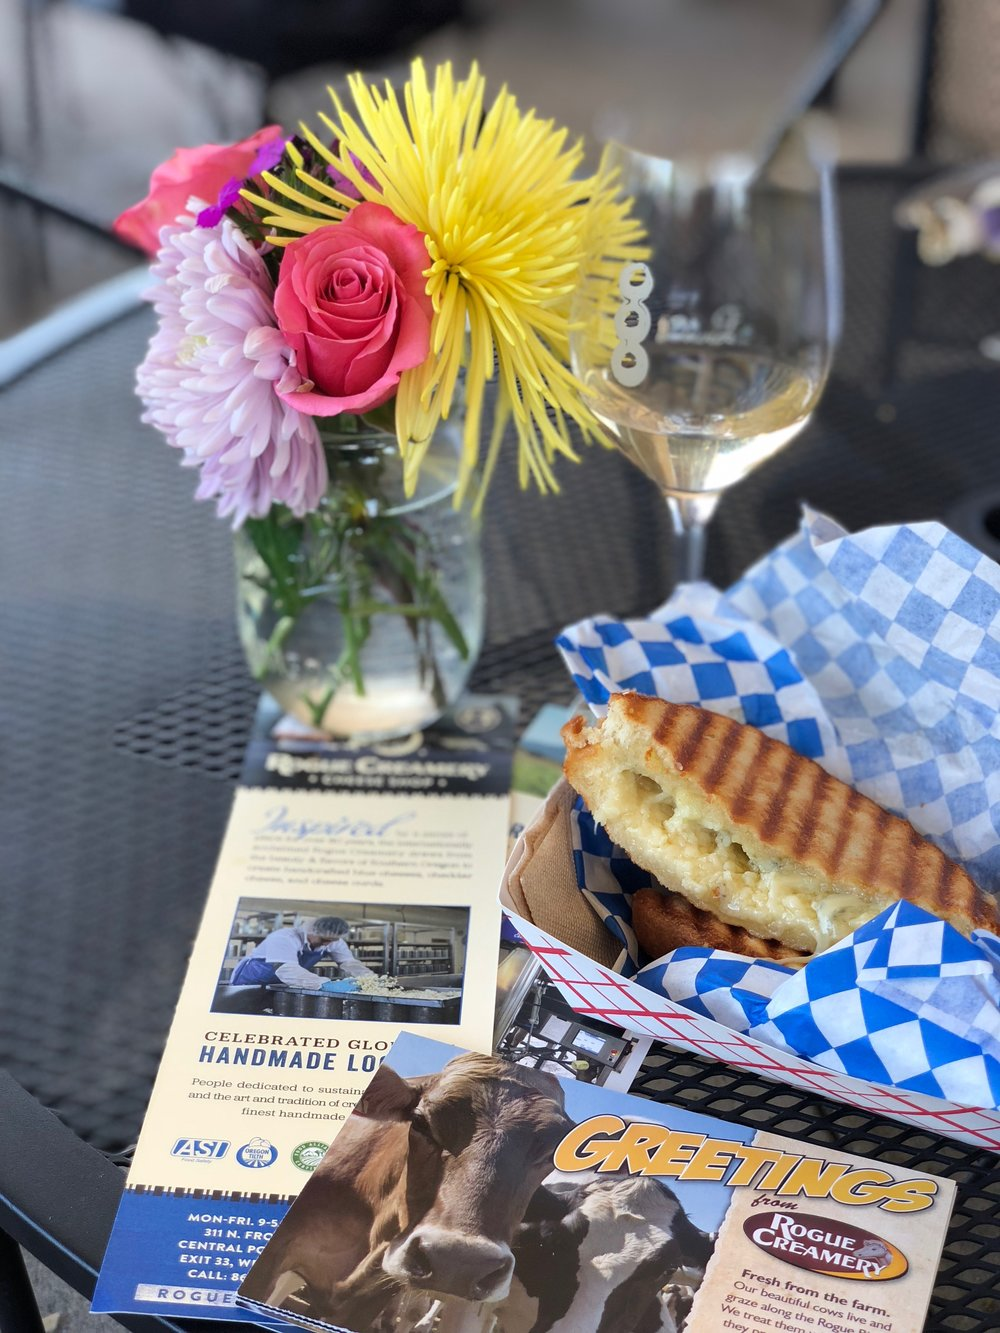 Stopped by Central Point's Rogue Creamery for a delicious blue cheese grilled cheese sandwich. David Ledger Winery is right next door - the wine and grilled cheese went perfectly together. :)